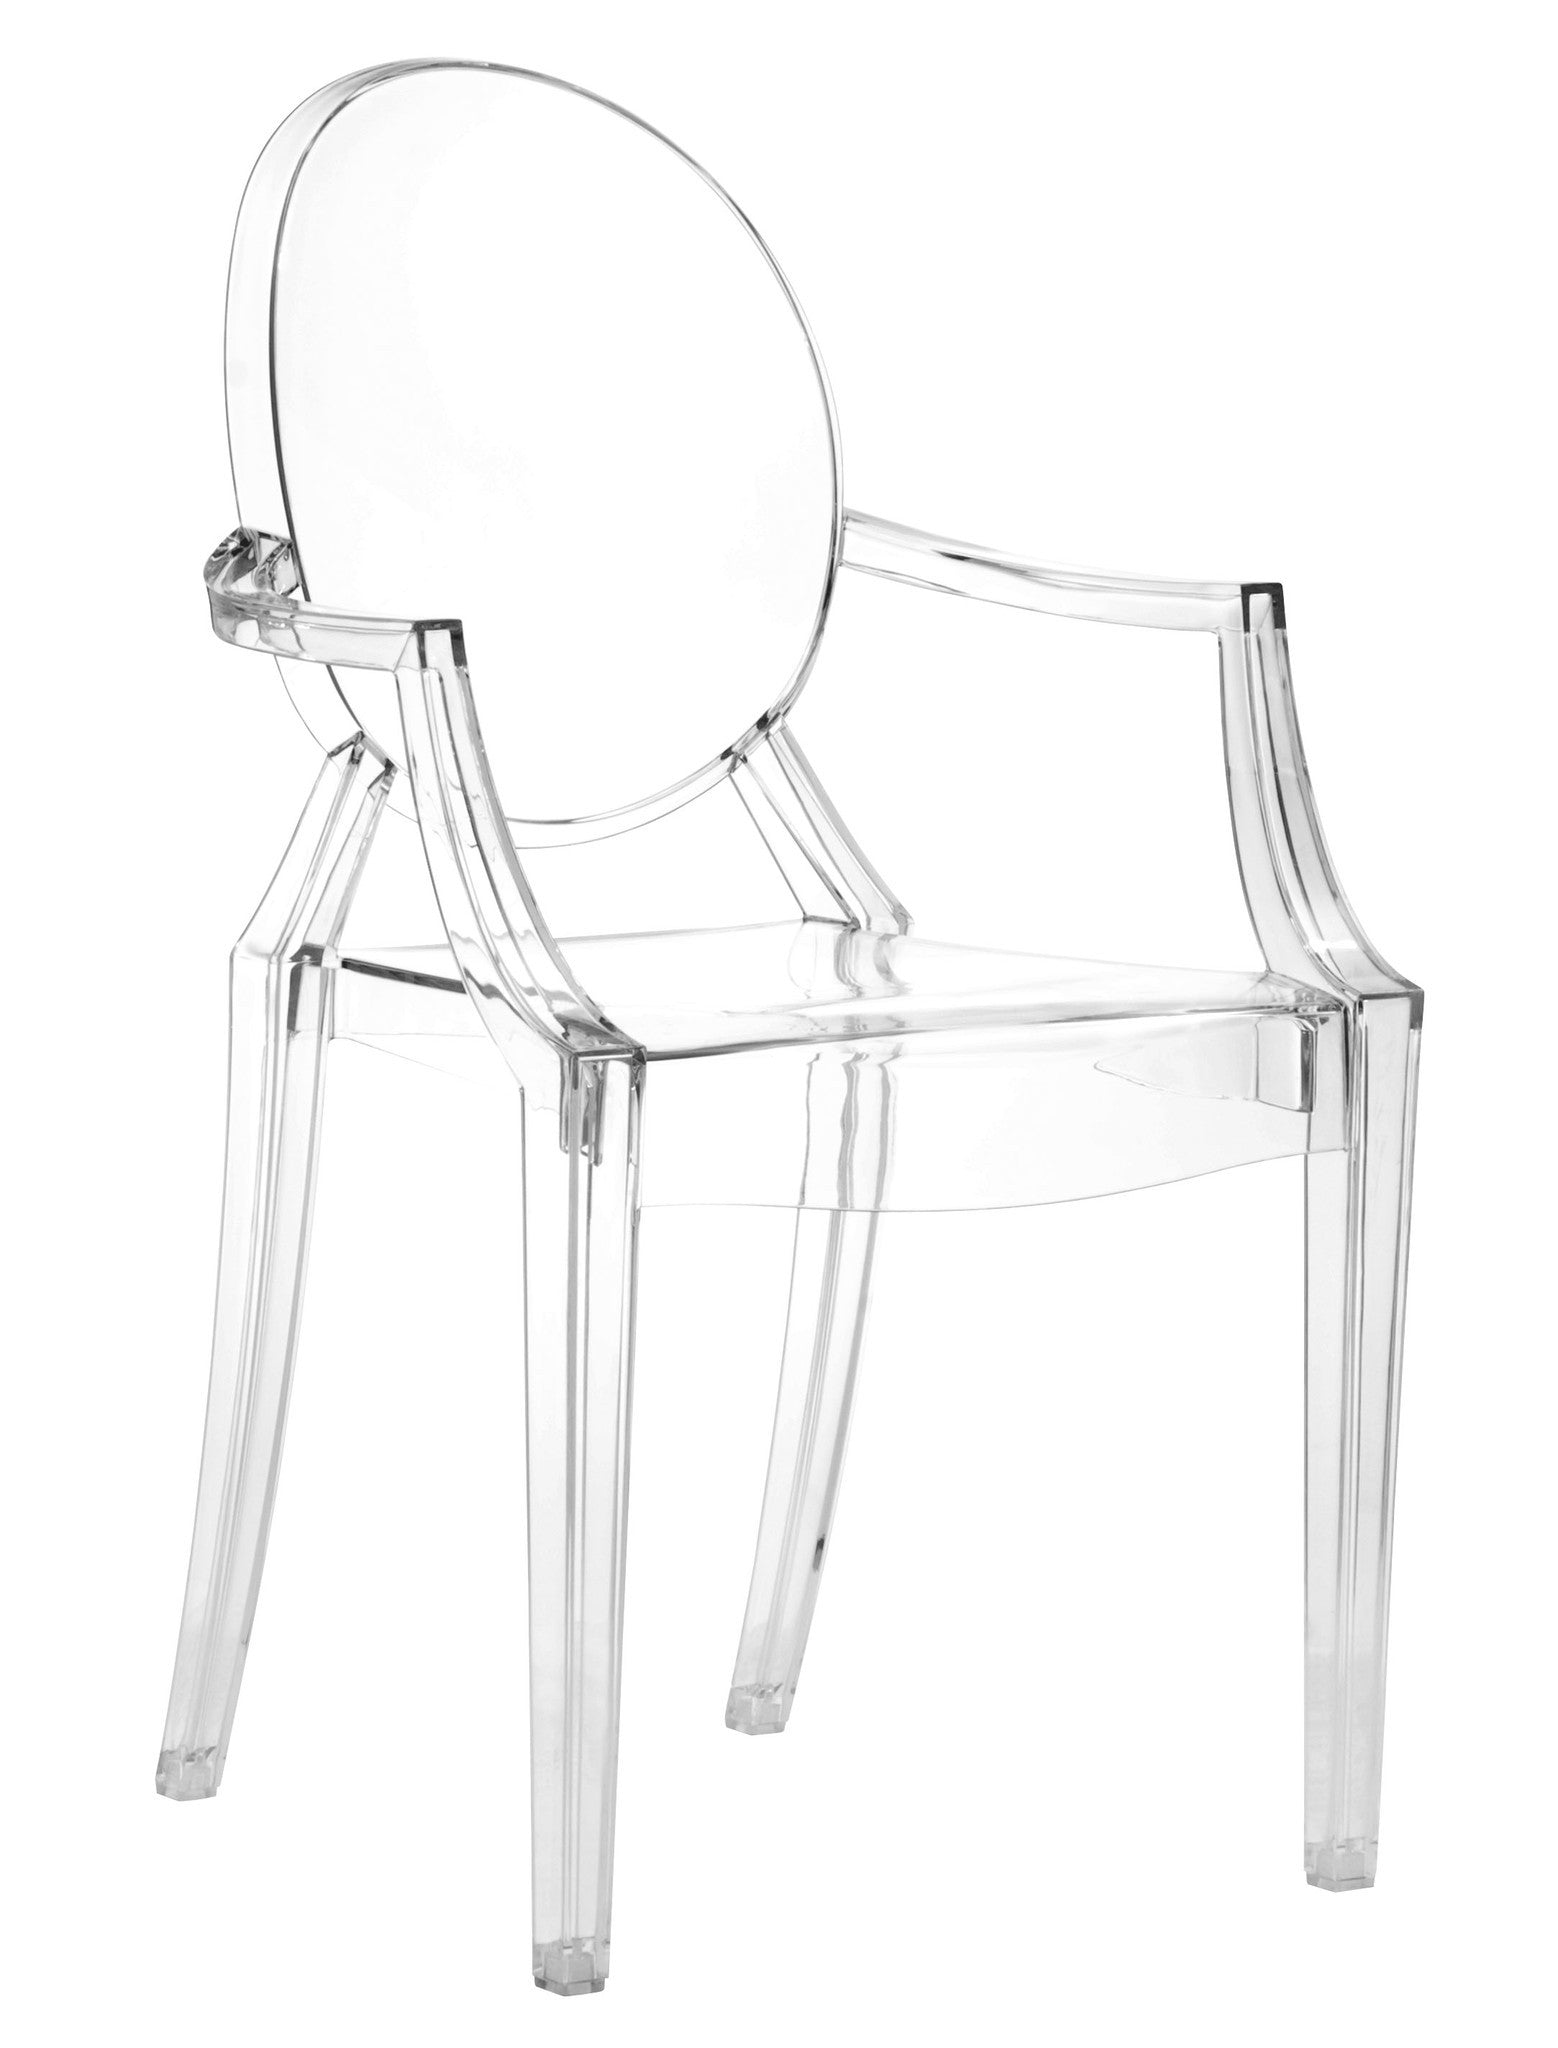 Charming Anime Dining Chair In Transparent Polycarbonate (Set Of 4) Dining Chairs Alan  ...